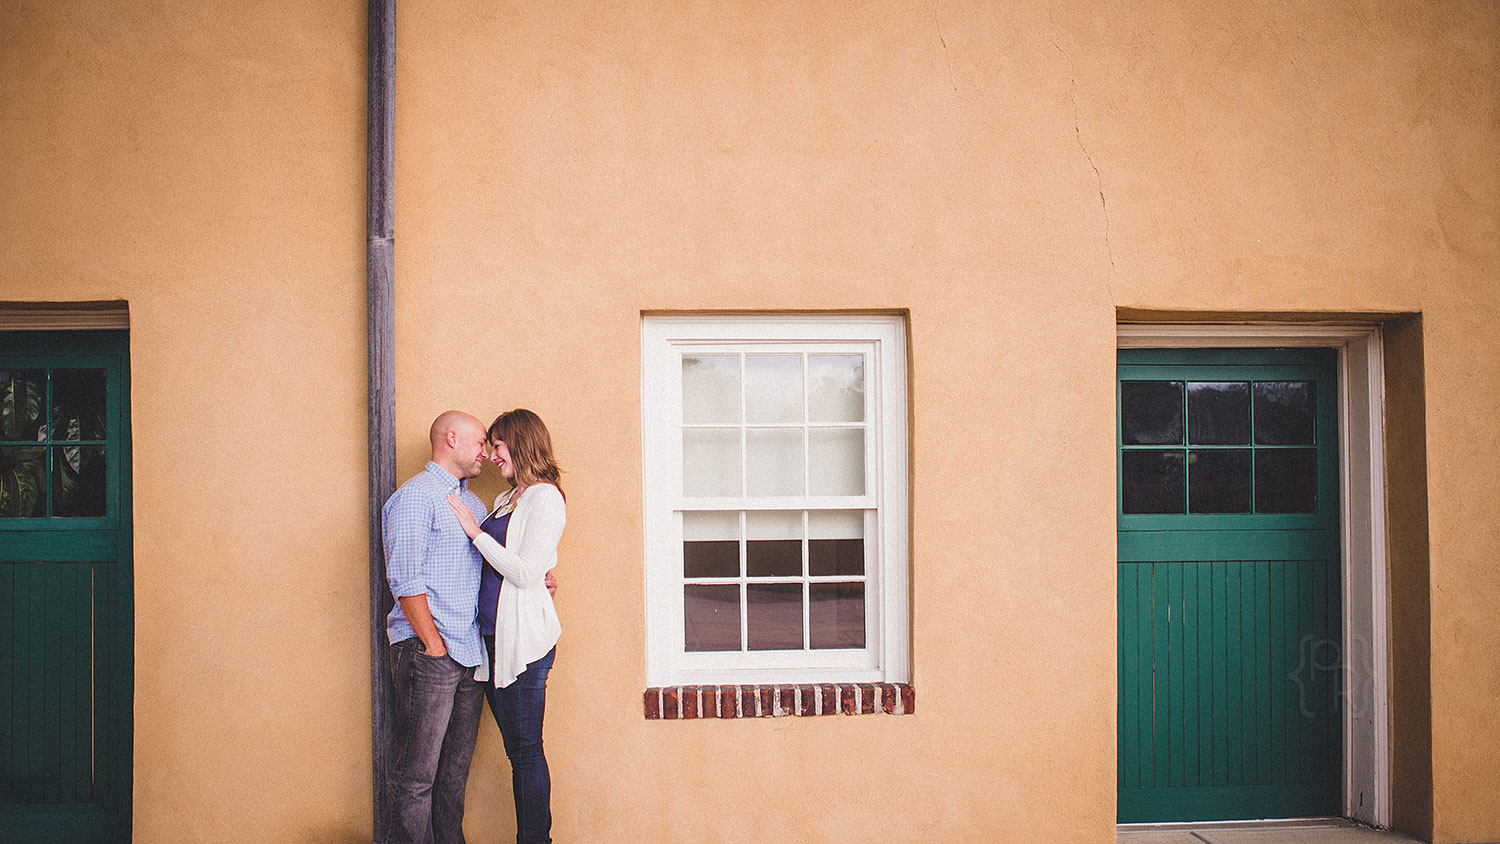 pat-robinson-photography-wilmington-engagement-session-1-2.jpg